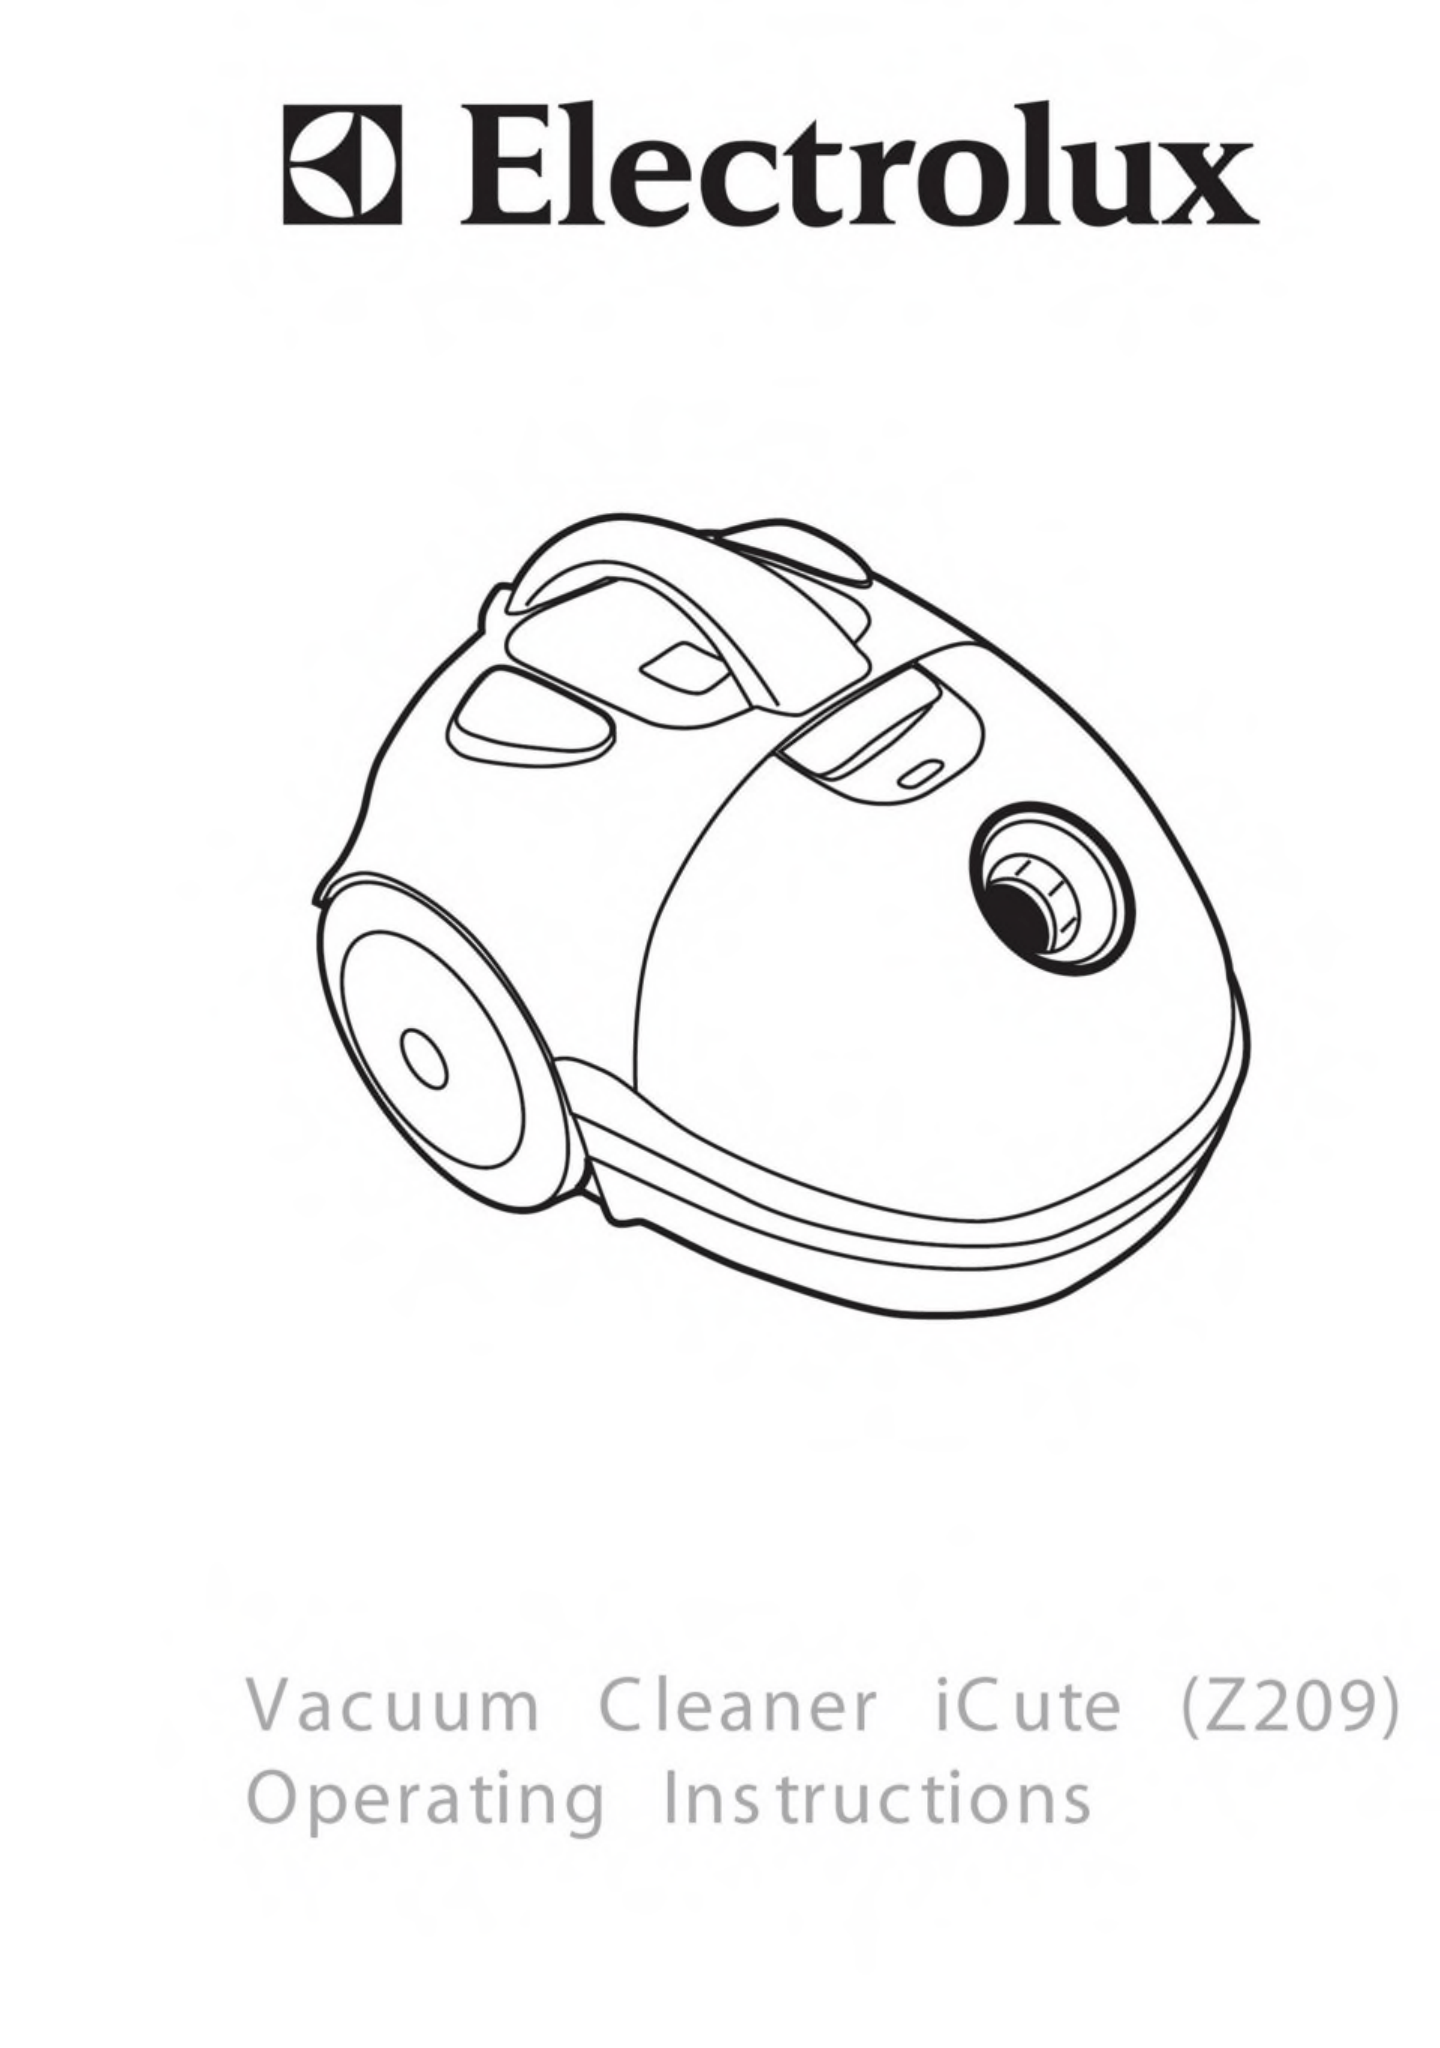 Electrolux Vacuum Cleaner Z209 User Guide